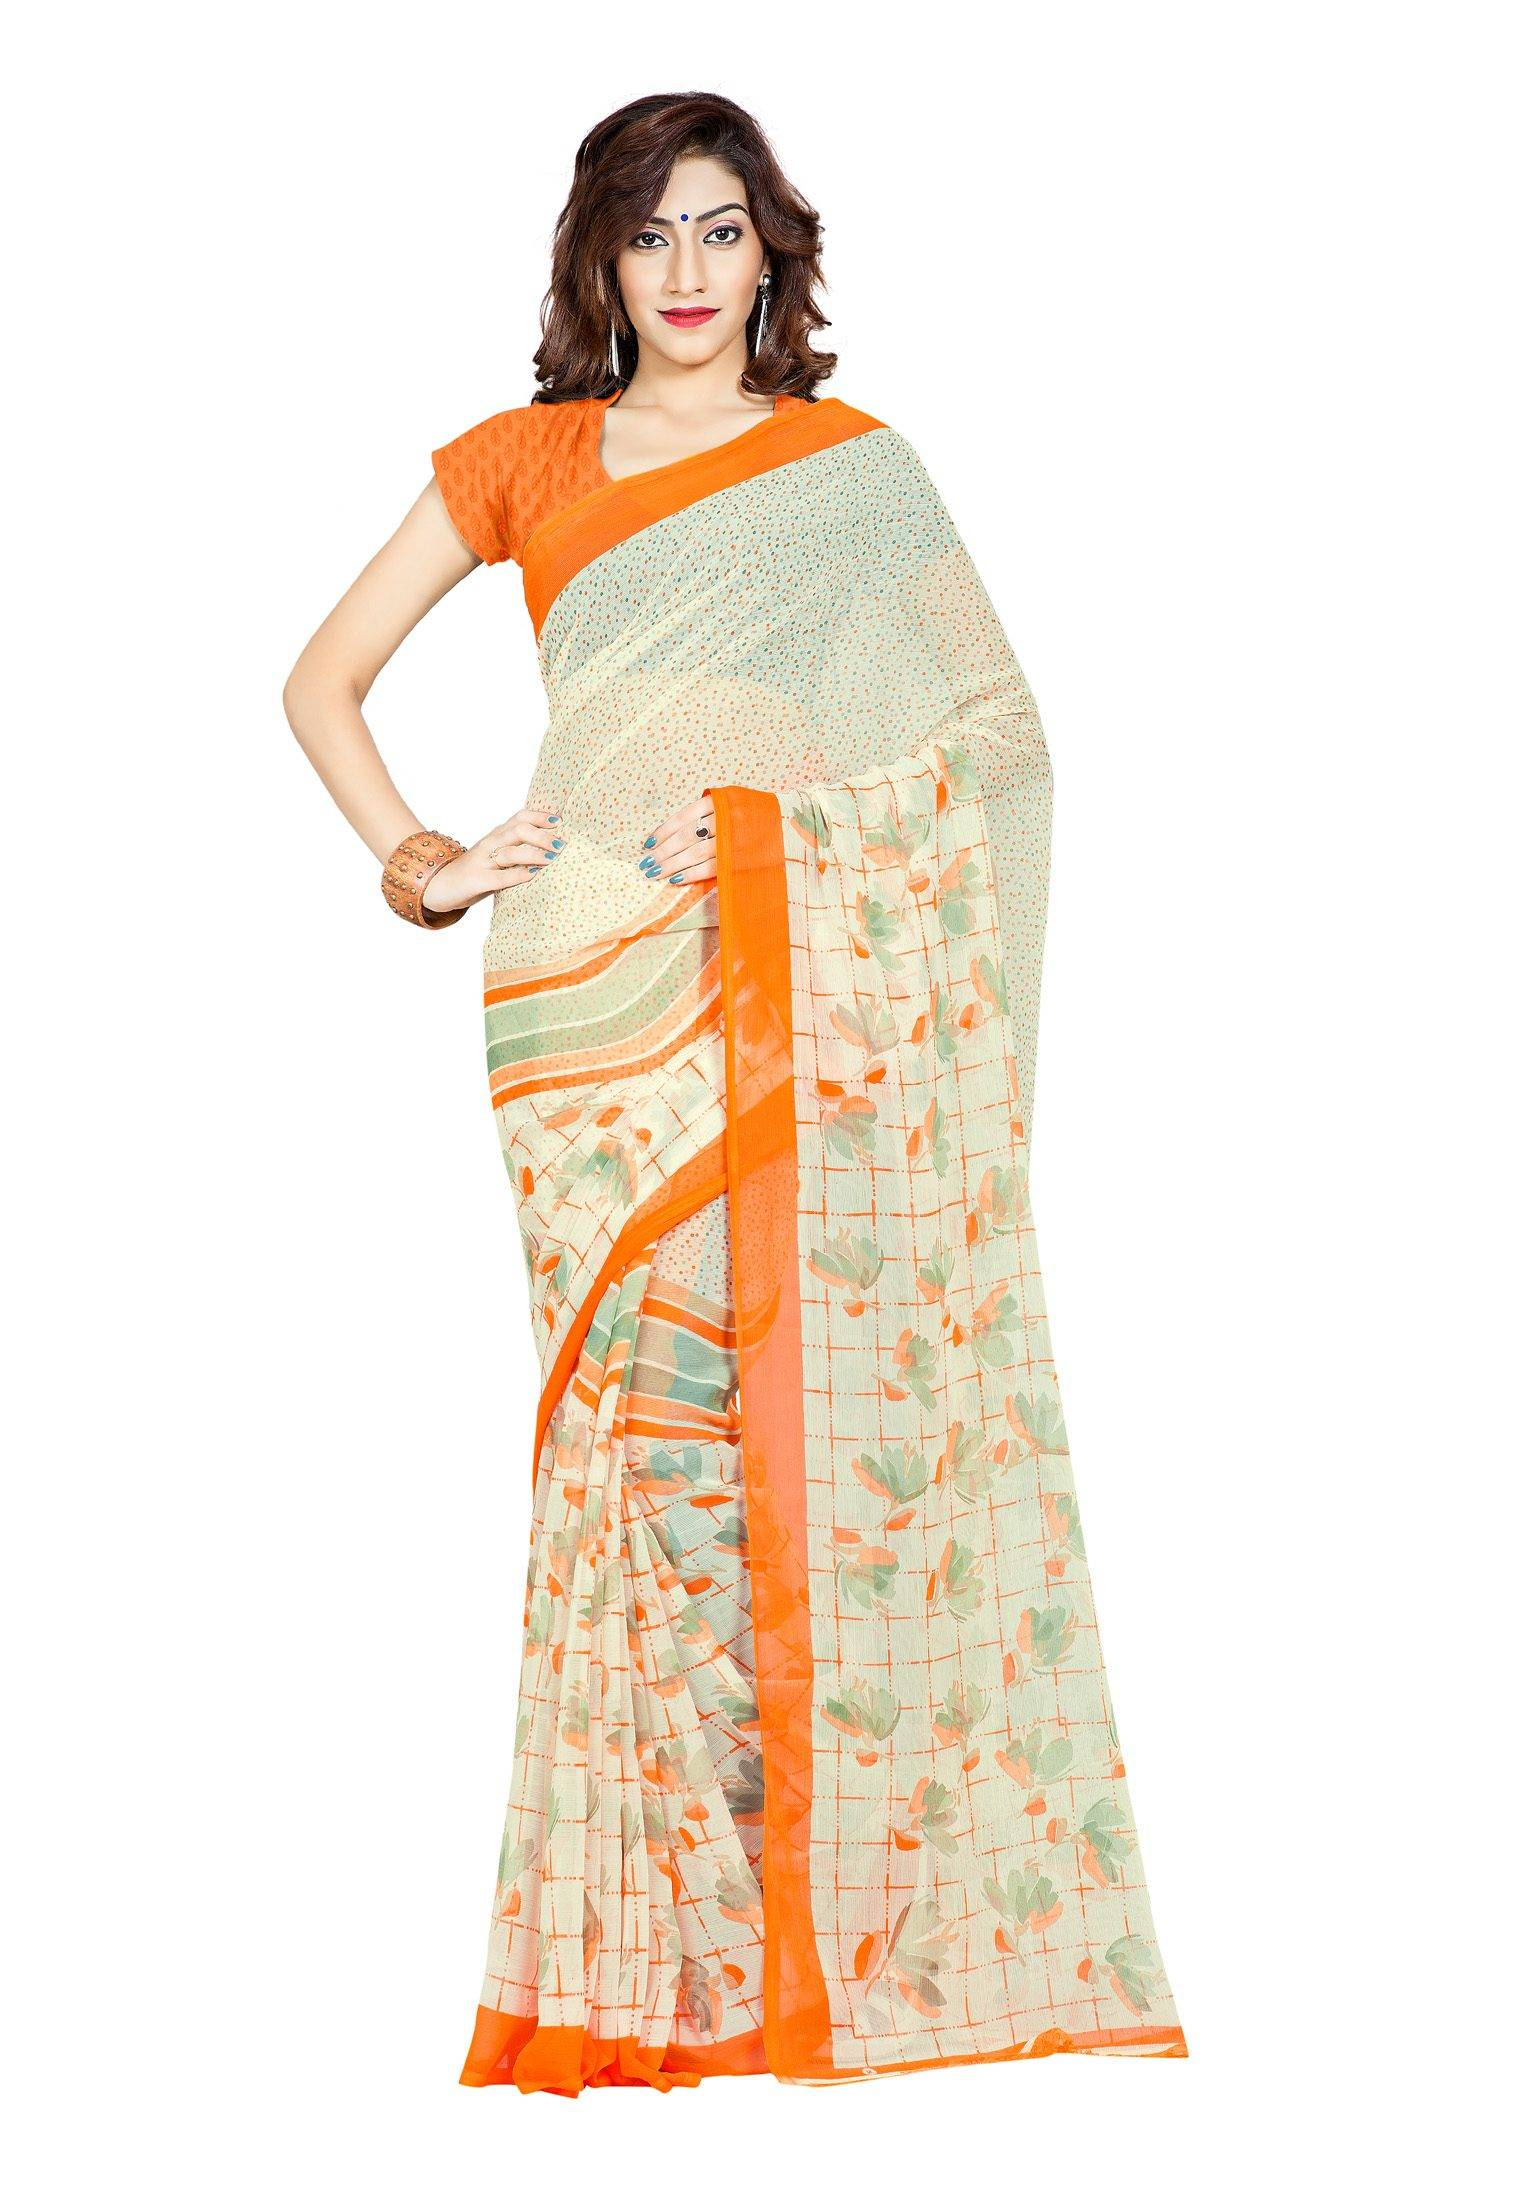 Ambaji Casual Wear Beige Colored Printed Chiffon Saree/Sari